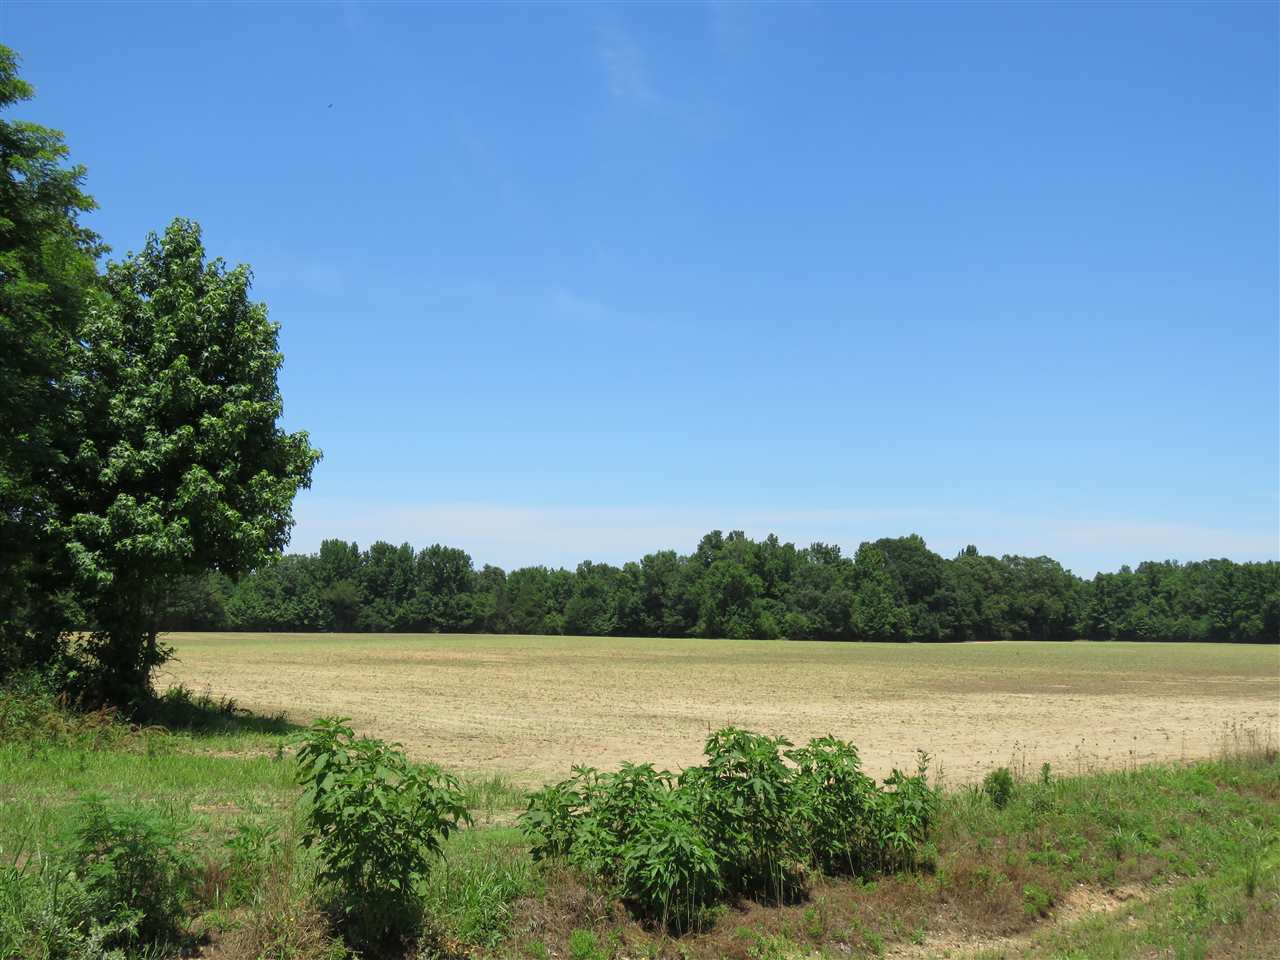 1 CR 444   Oxford MS 38655 - Mississippi property for sale